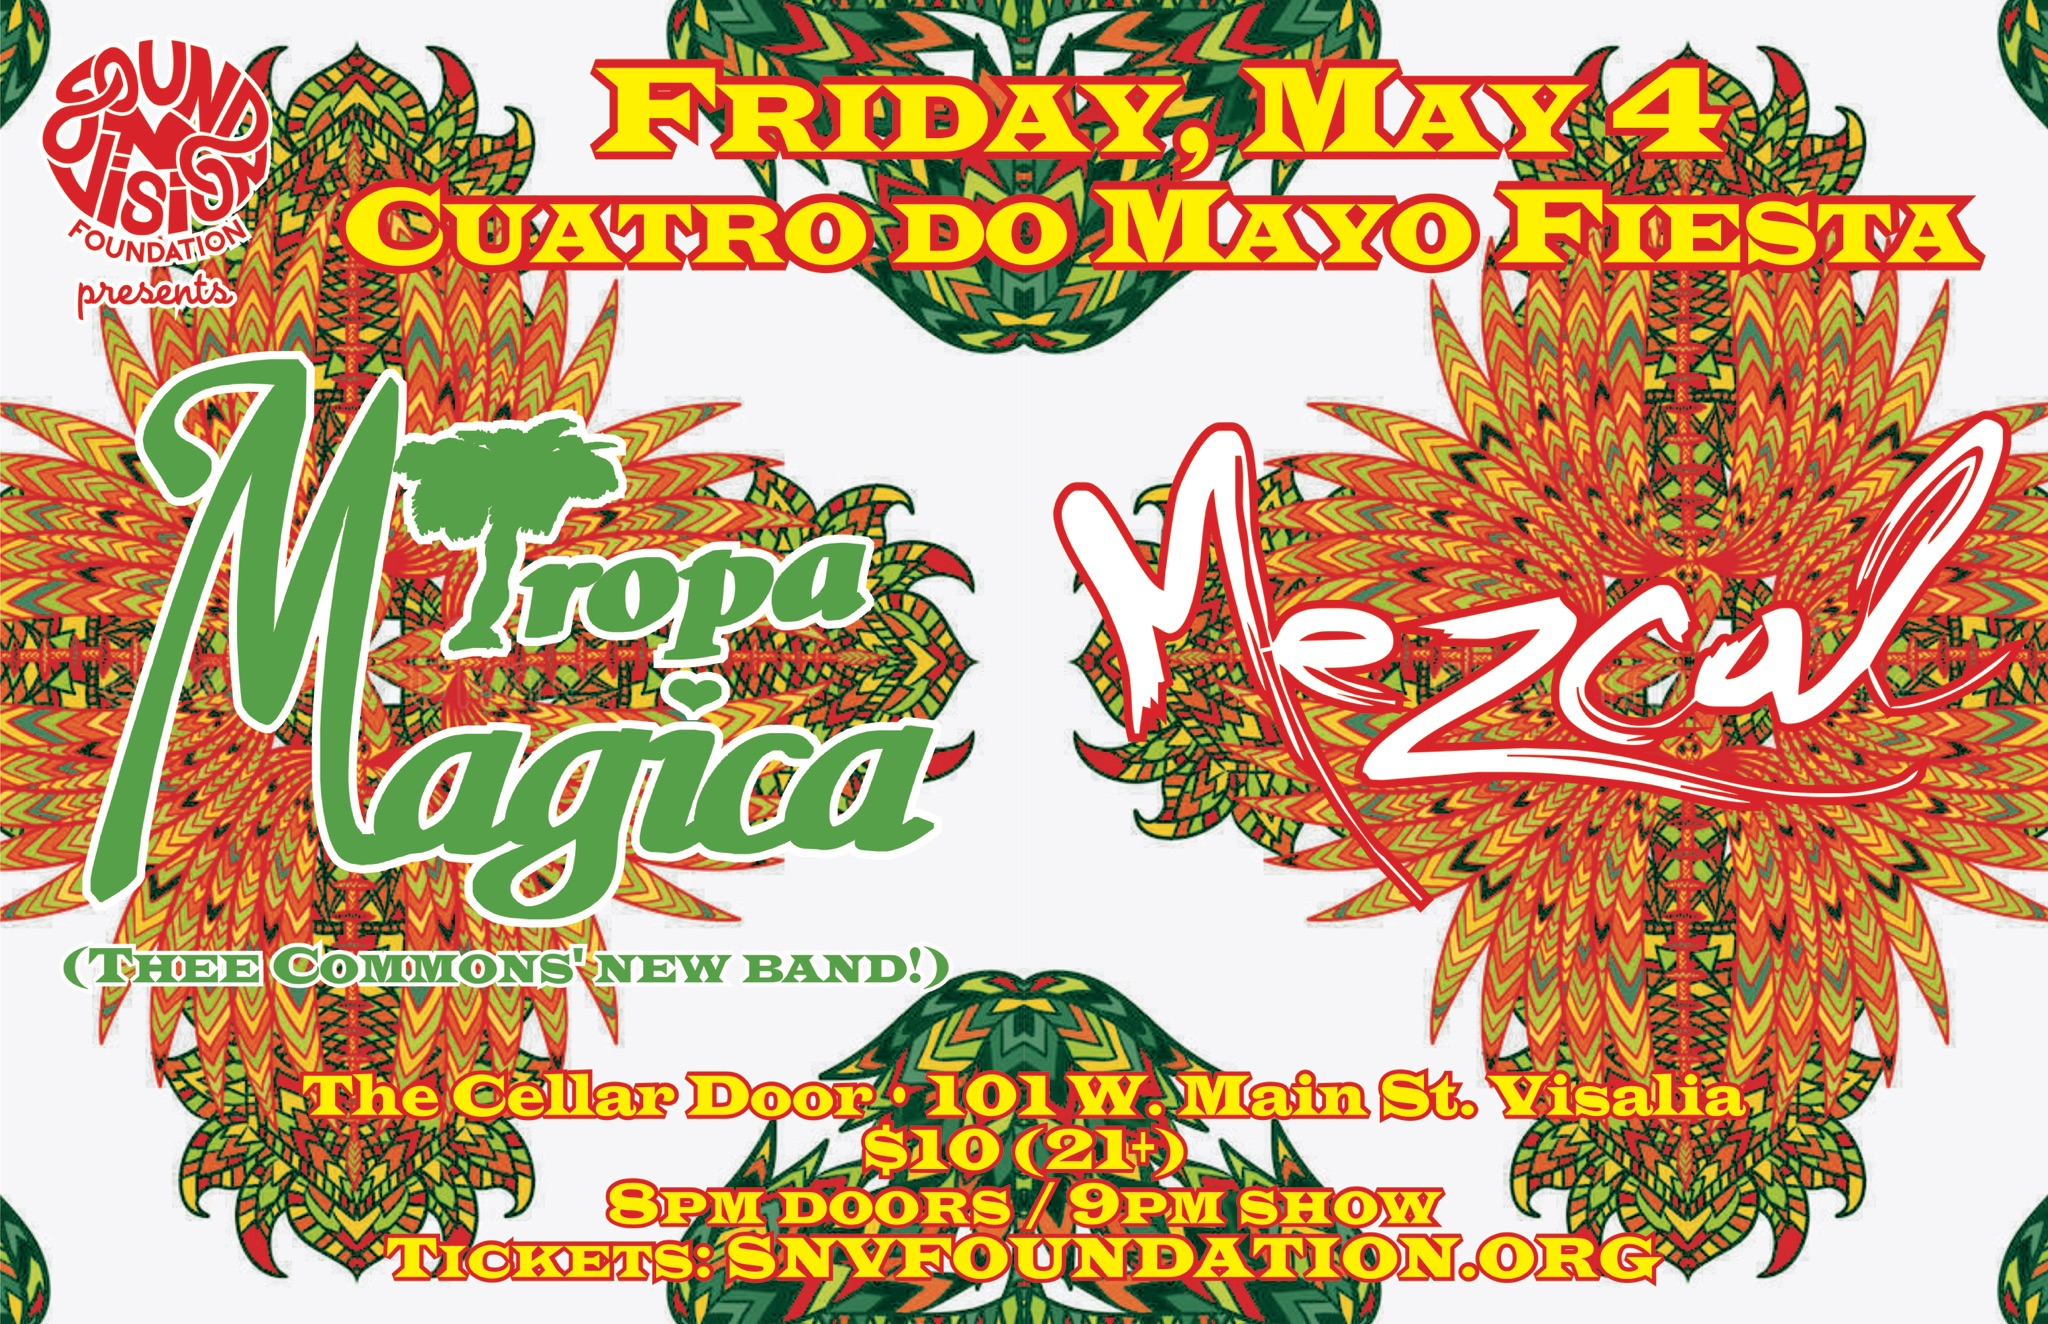 Super cumbia bands unite for one night! Come on down!